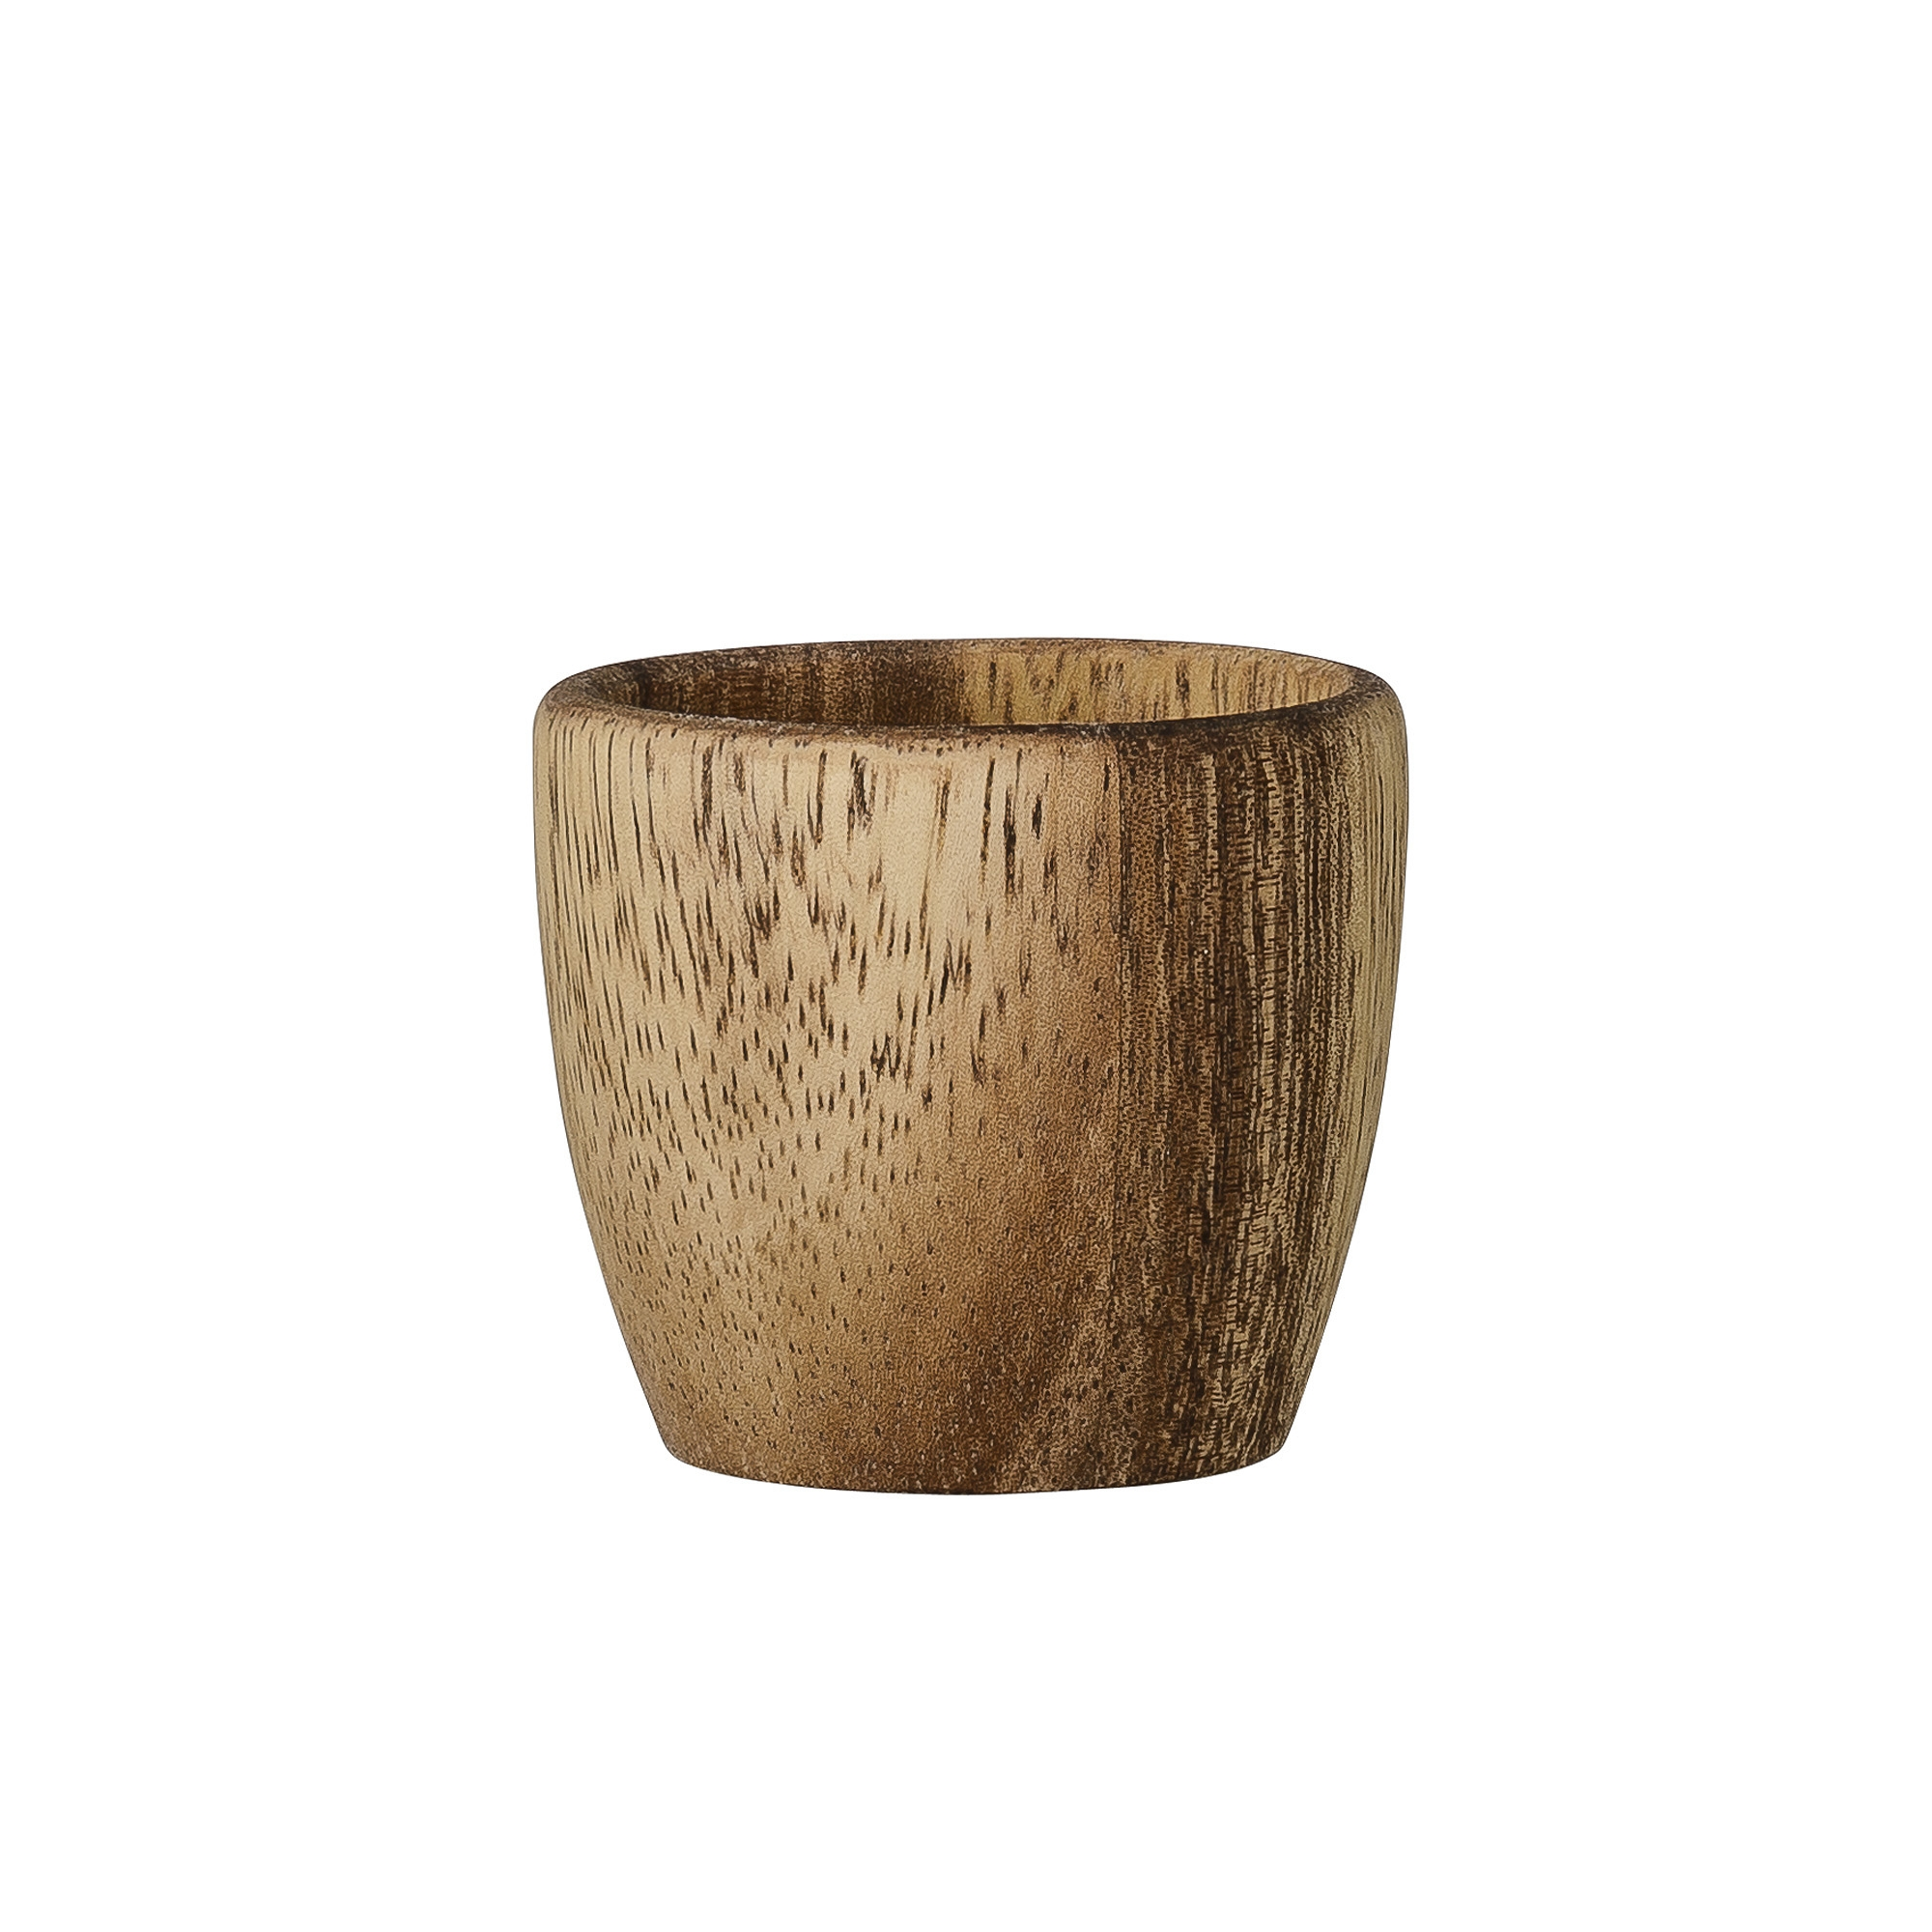 Image of   Egg cup, brown, acacia